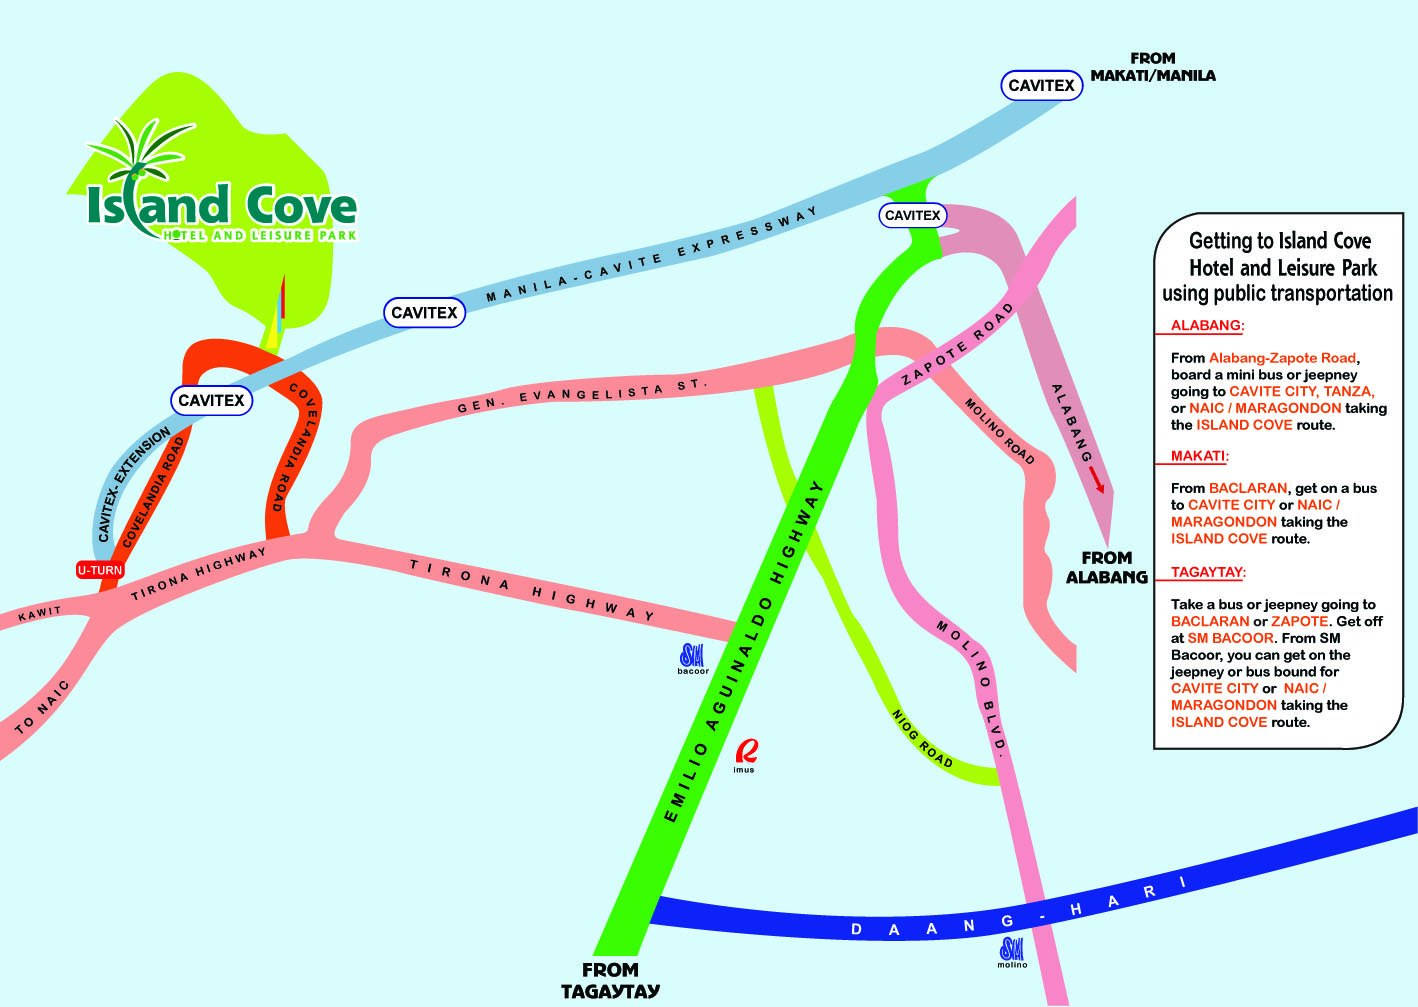 Map to Island Cove from different points